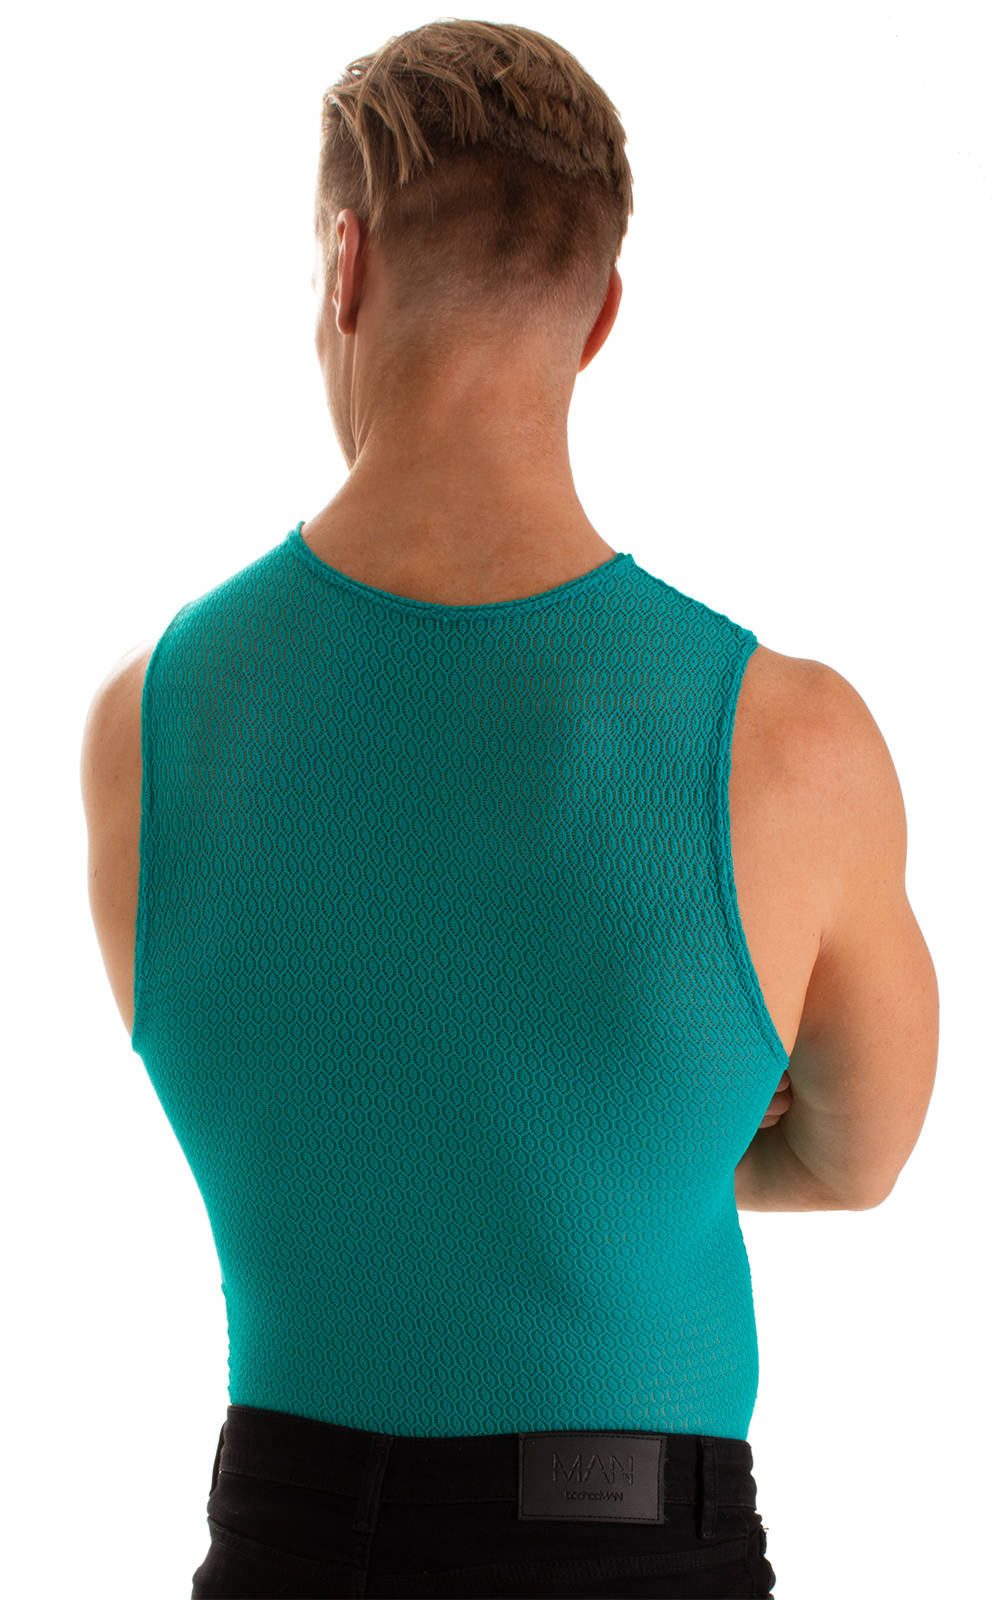 Sleeveless Lycra Muscle Tee in Teal Stretch Lace 2